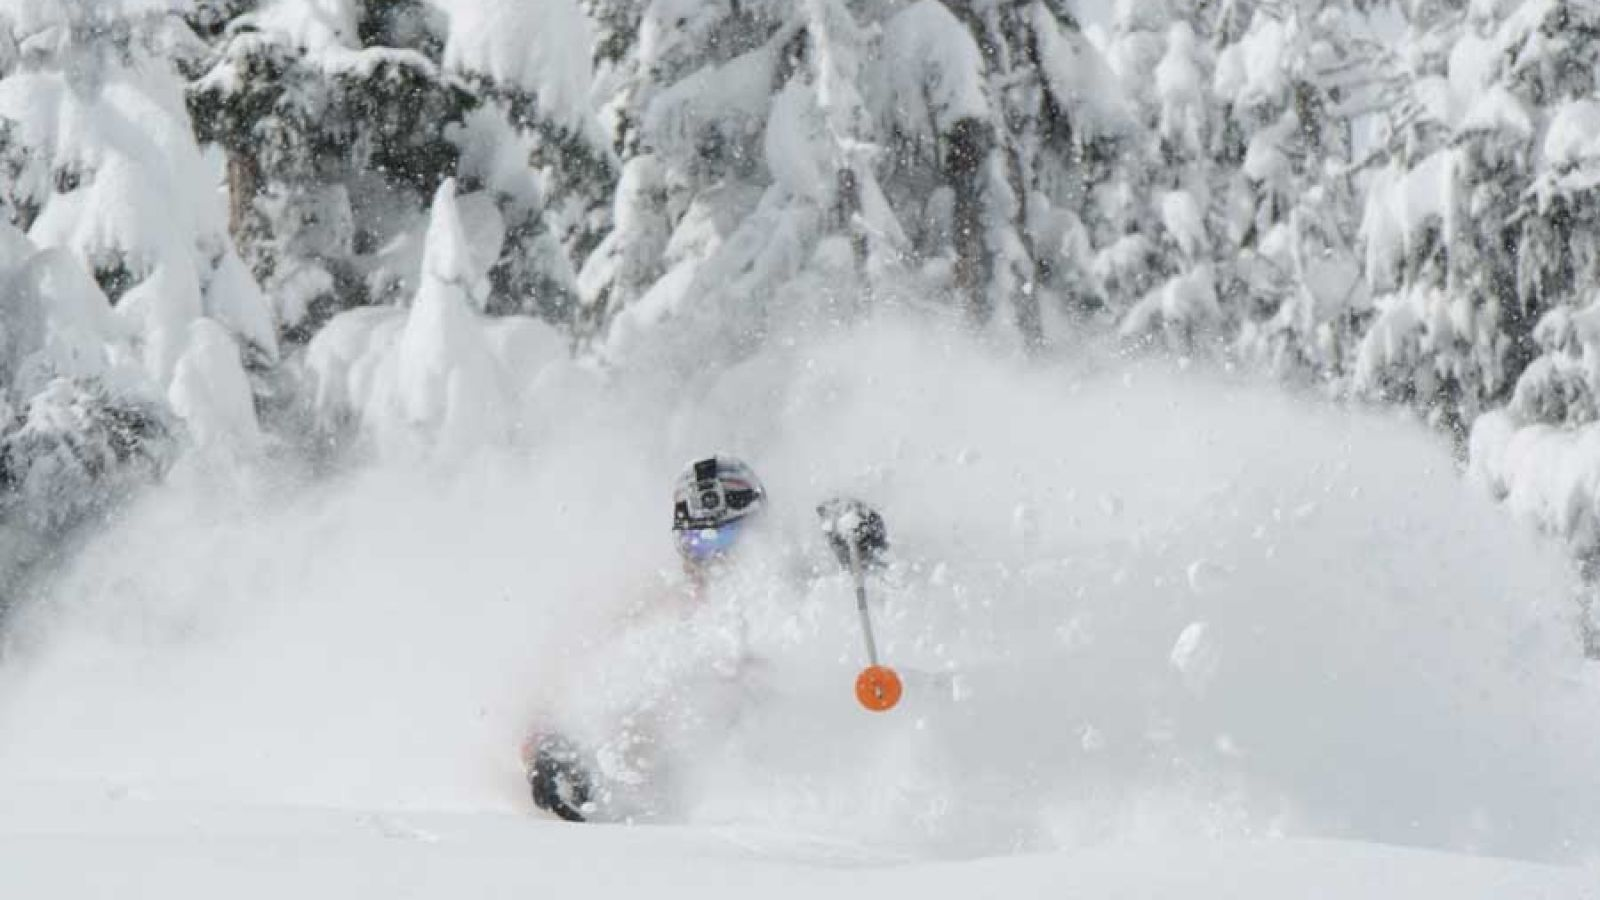 Outstanding terrain and snow; Craig McGee photo.